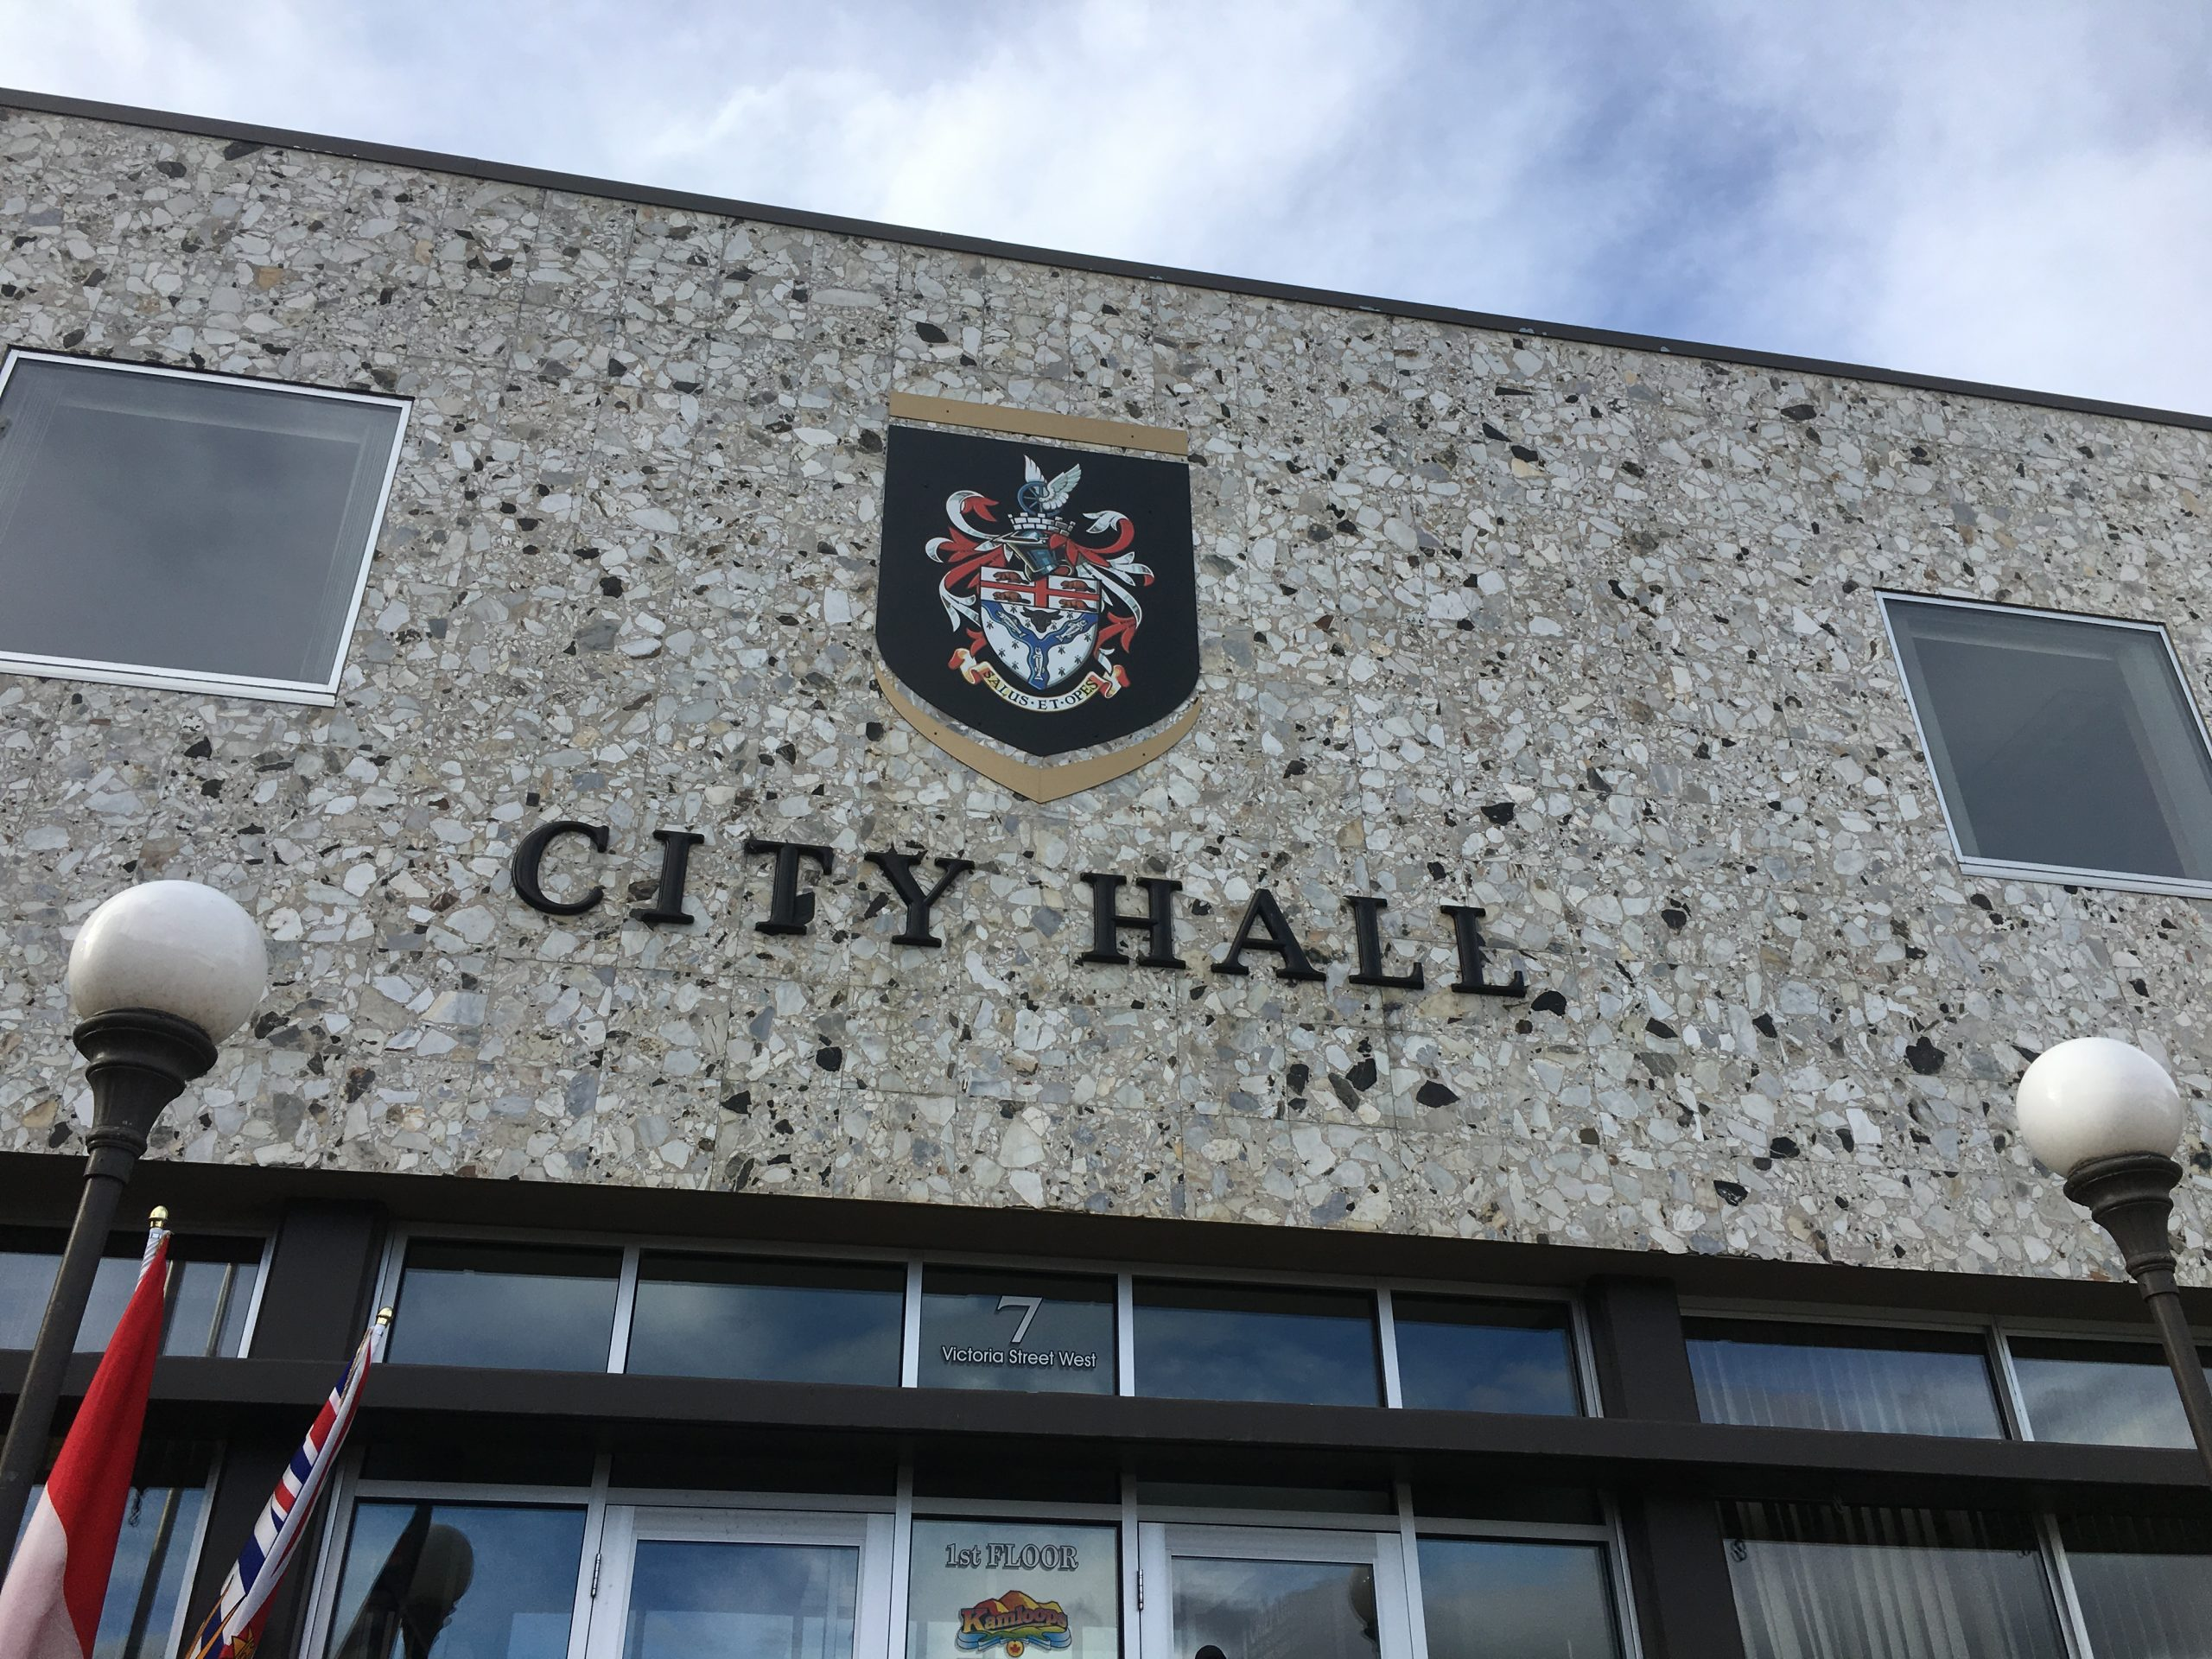 Candidate list for Kamloops 2018 municipal election